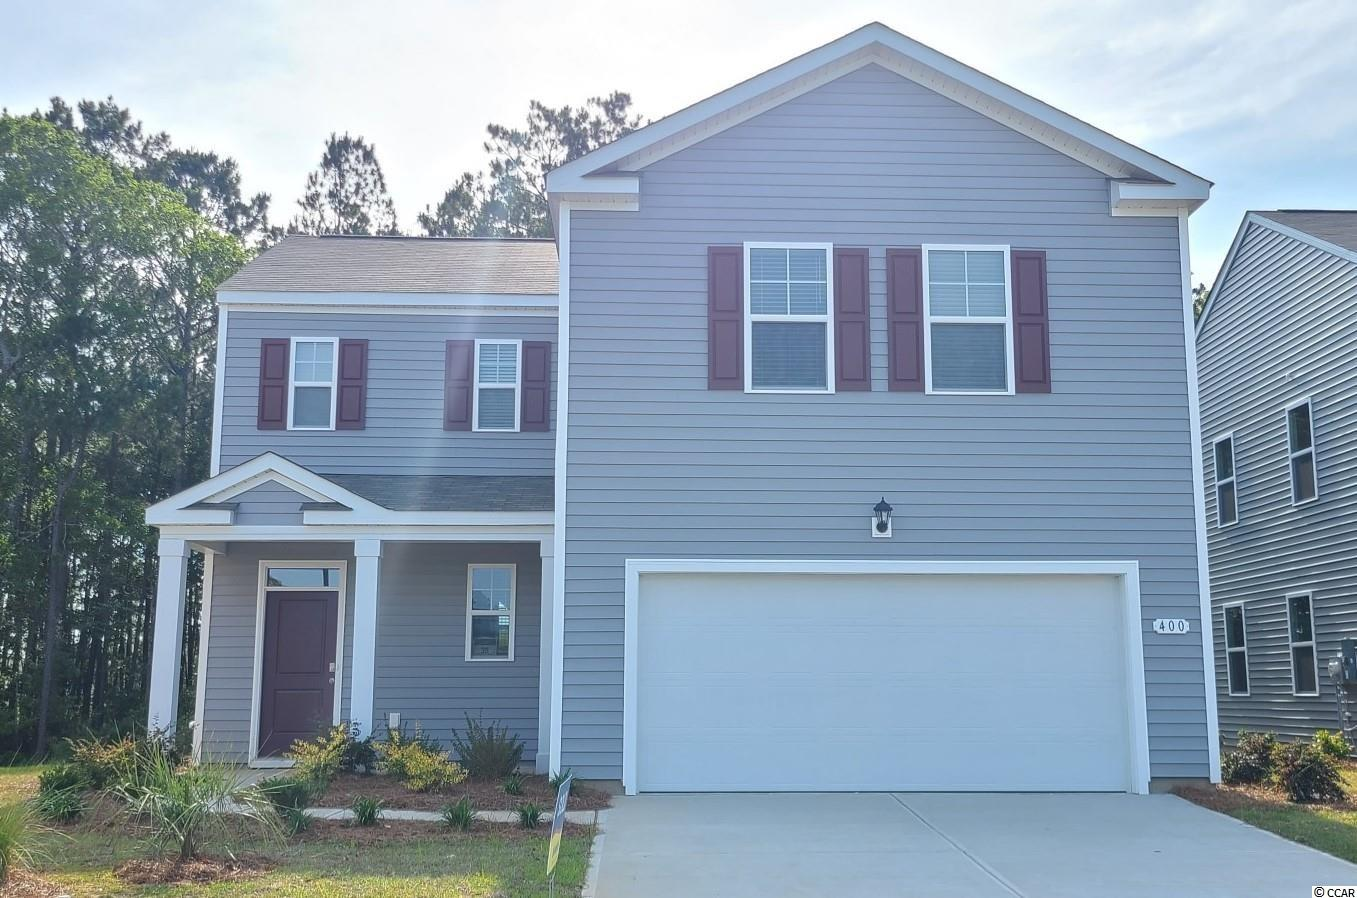 Oak Arbor is a brand new natural gas community conveniently located off of Highway 707 in Murrells Inlet close to shopping, schools, and the famous Murrells Inlet Marsh Walk. This Arden plan incorporates a smart design with thoughtful details that you will appreciate. The kitchen features an extra large pantry, a lot of cabinet space, granite countertops, and an efficient layout that is open to the dining and living room. Low maintenance laminate flooring throughout the entire first floor gives the look of wood with easy care and clean up! Sliding glass doors off the dining area lead to the rear covered porch creating a seamless transition from indoor to outdoor living. Upstairs, the primary bedroom is a perfect retreat with a walk-in closet and generous bathroom featuring a double vanity, large shower, and a separate linen closet. Plus, the laundry room is on the second floor with all of the bedrooms! Tankless gas water heater and a 2-car garage with garage door opener also included. It gets better- this is America's Smart Home! Ask an agent today about our industry leading smart home technology package that is included in each of our new homes.   *Photos are of a similar Arden home. (Home and community information, including pricing, included features, terms, availability and amenities, are subject to change prior to sale at any time without notice or obligation. Square footages are approximate. Pictures, photographs, colors, features, and sizes are for illustration purposes only and will vary from the homes as built. Equal housing opportunity builder.)